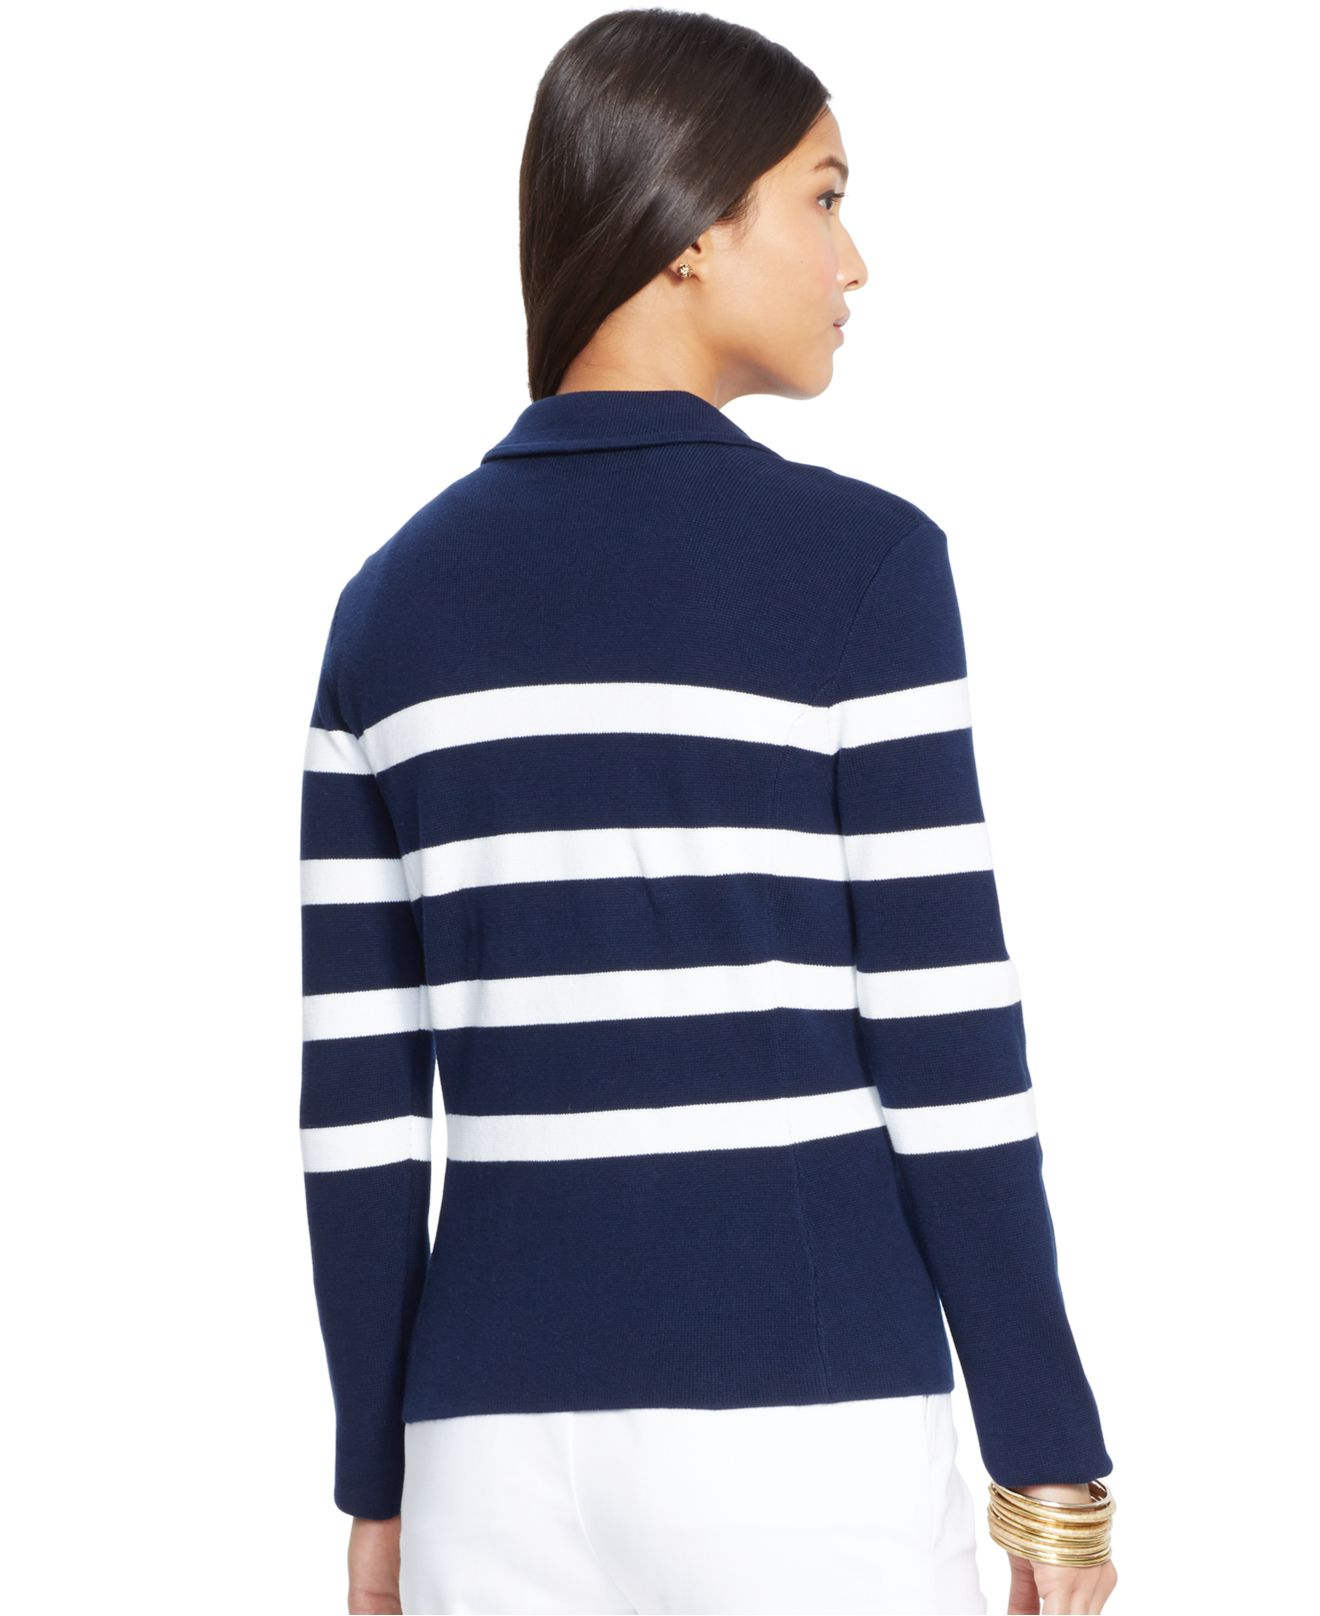 Lauren by ralph lauren Striped Sweater Blazer in Blue | Lyst